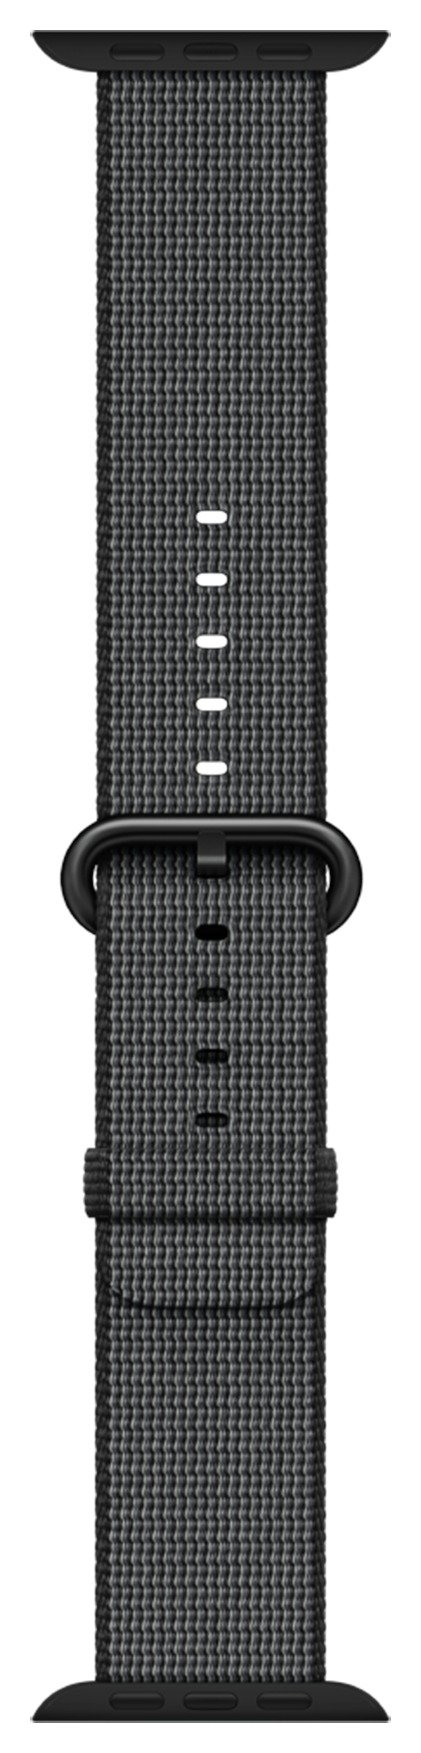 Apple Watch 42mm Black Woven Band cheapest retail price